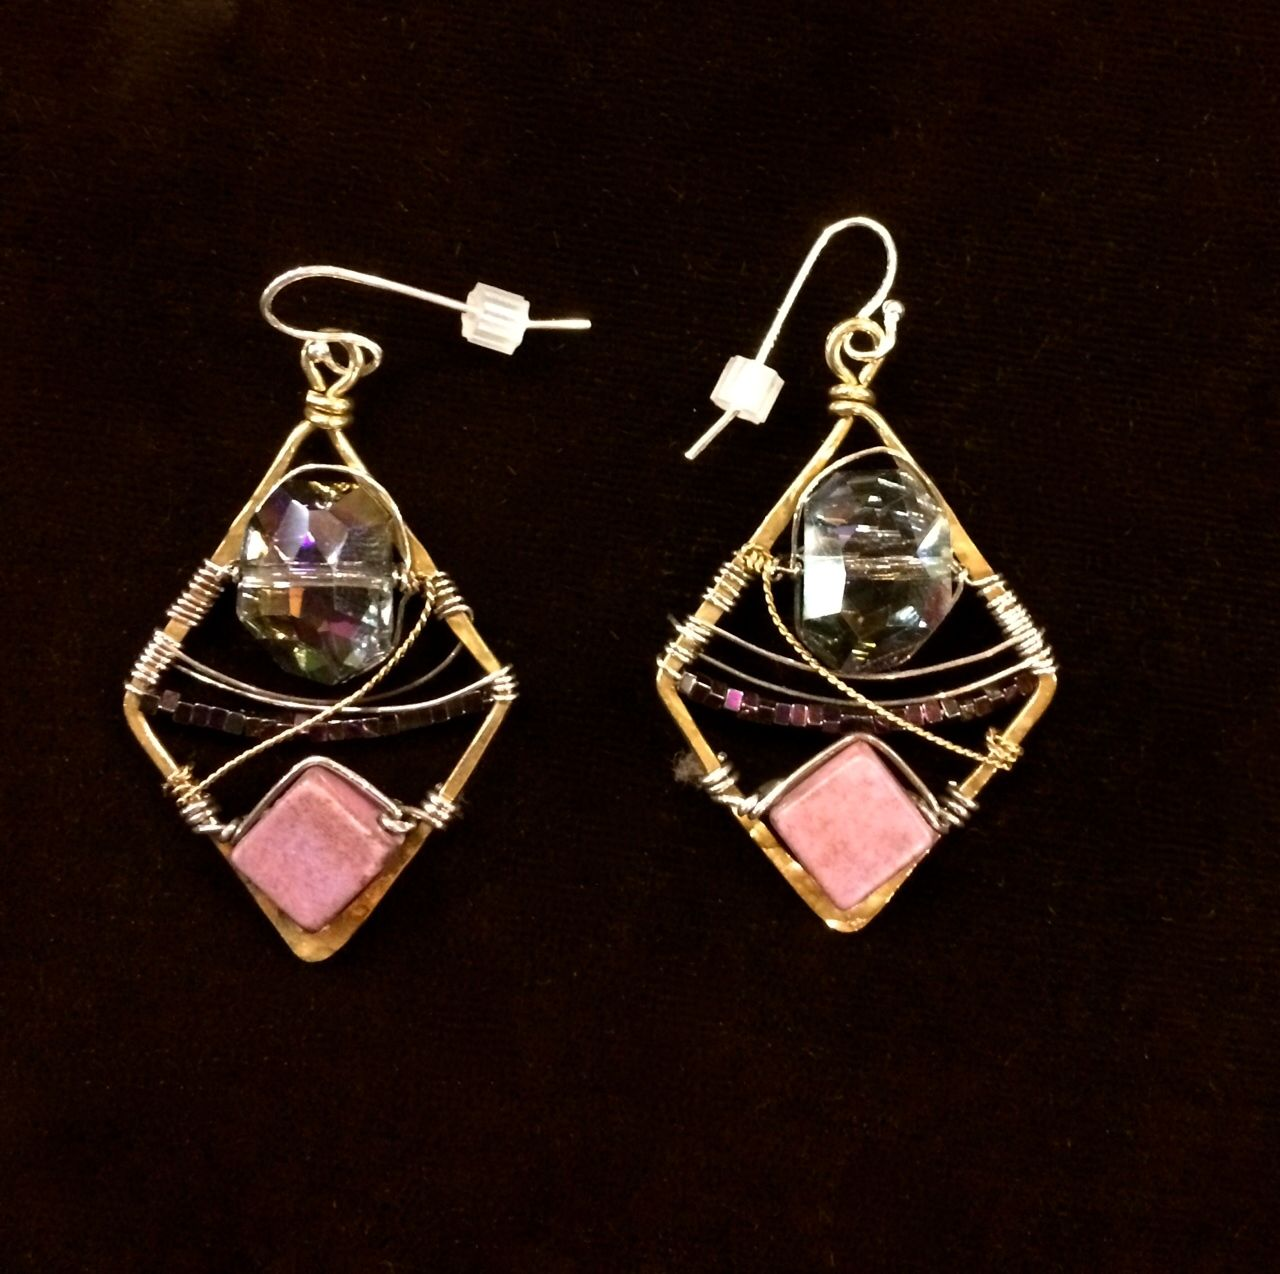 art by any means handcrafted gemstone and crystal jewelry